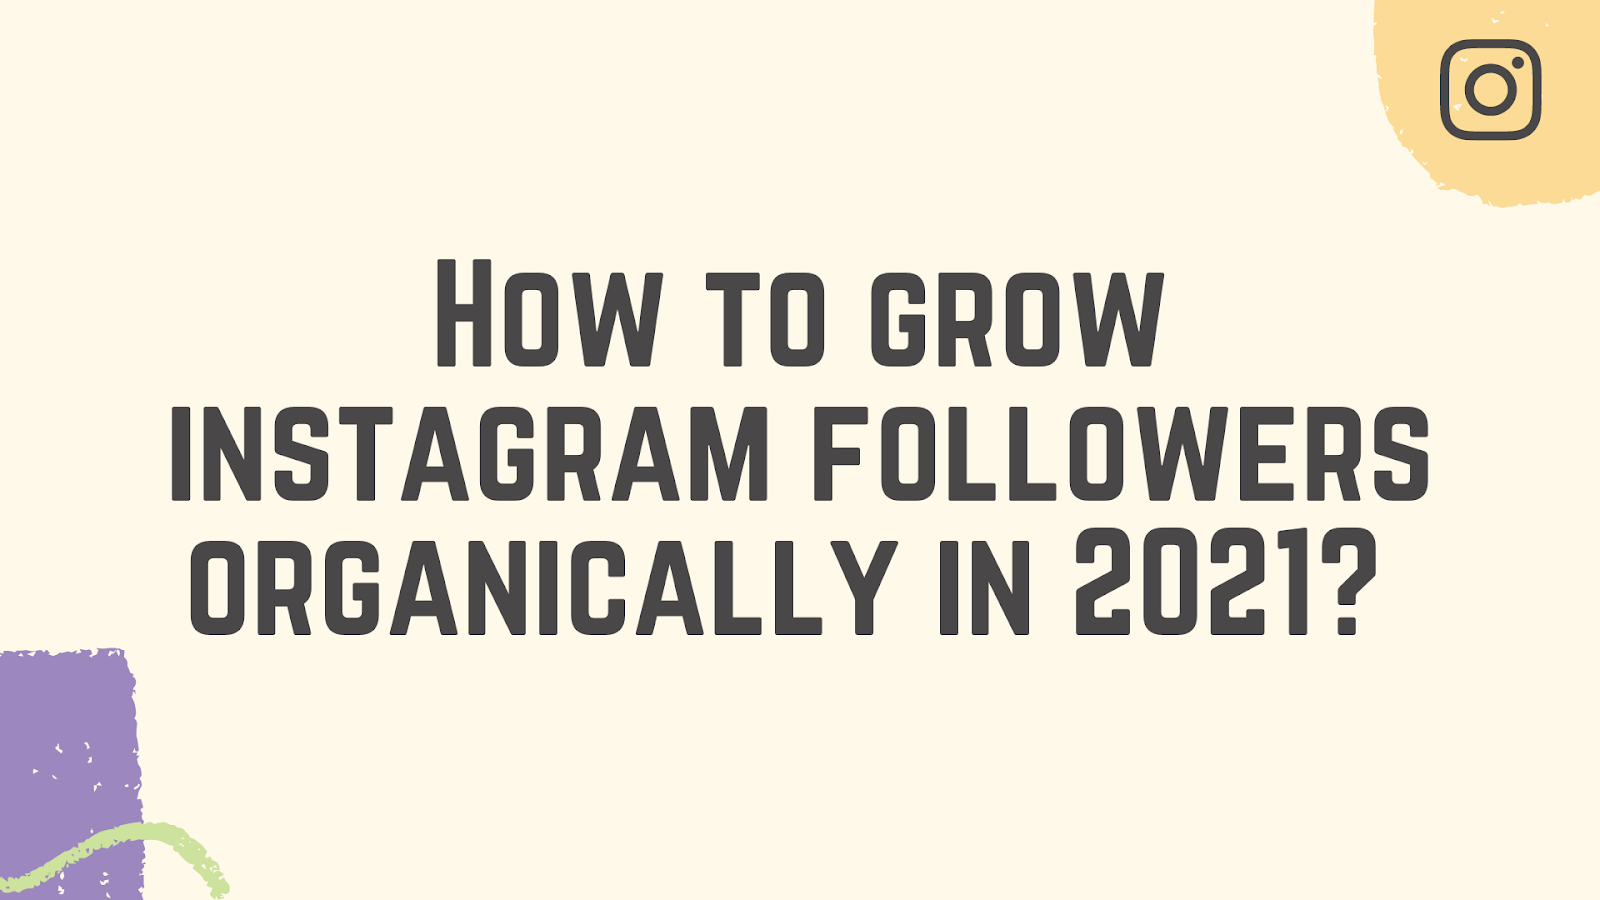 how to grow an Instagram meme page